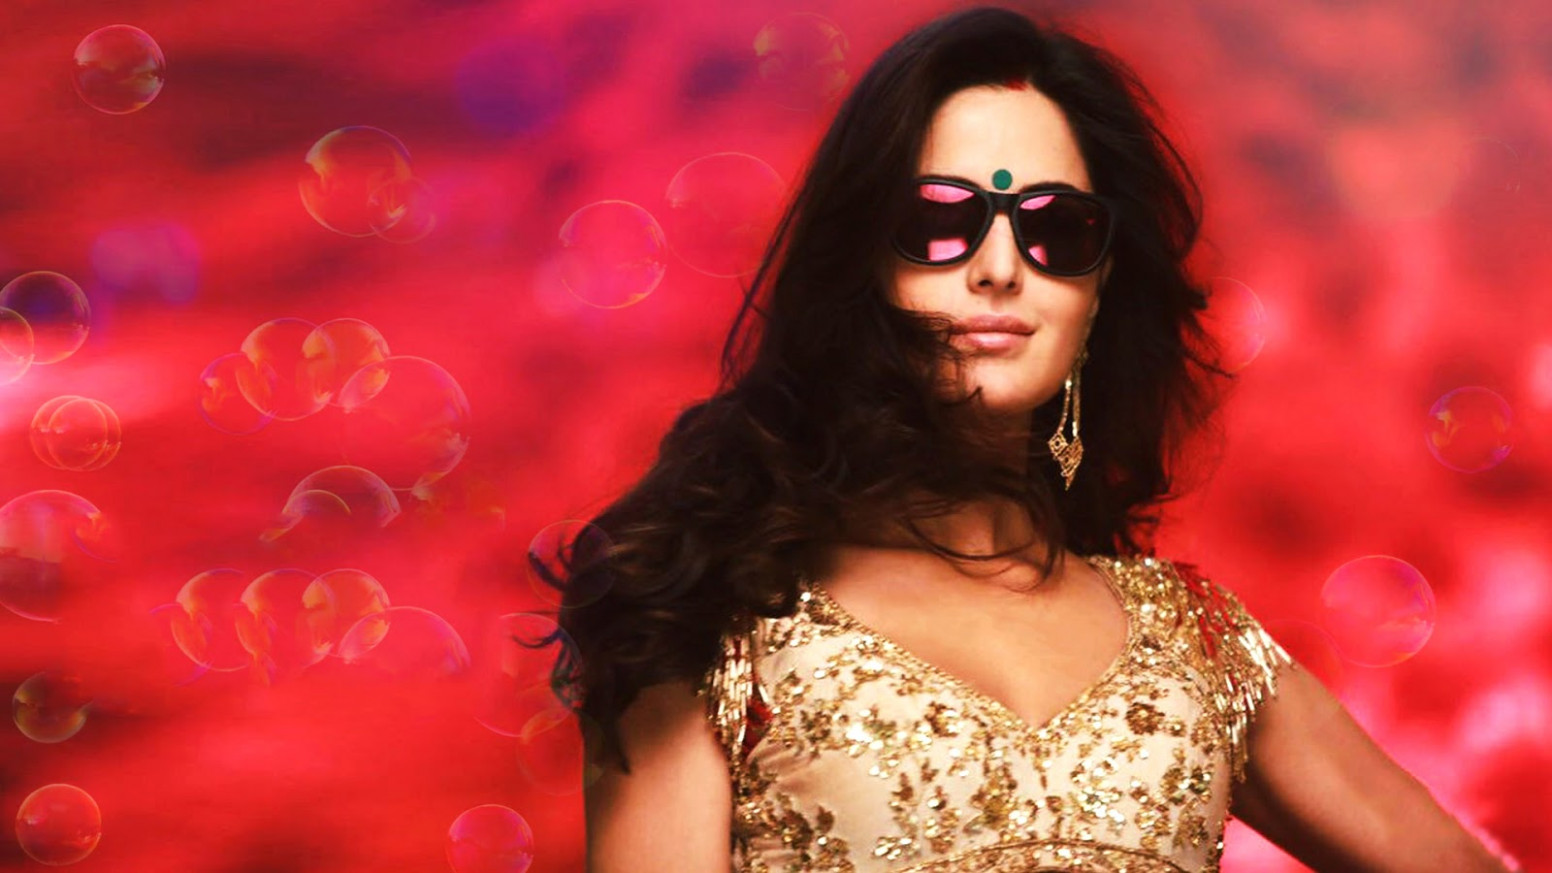 Katrina Kaif Wallpapers HD Download Free 1080p ...